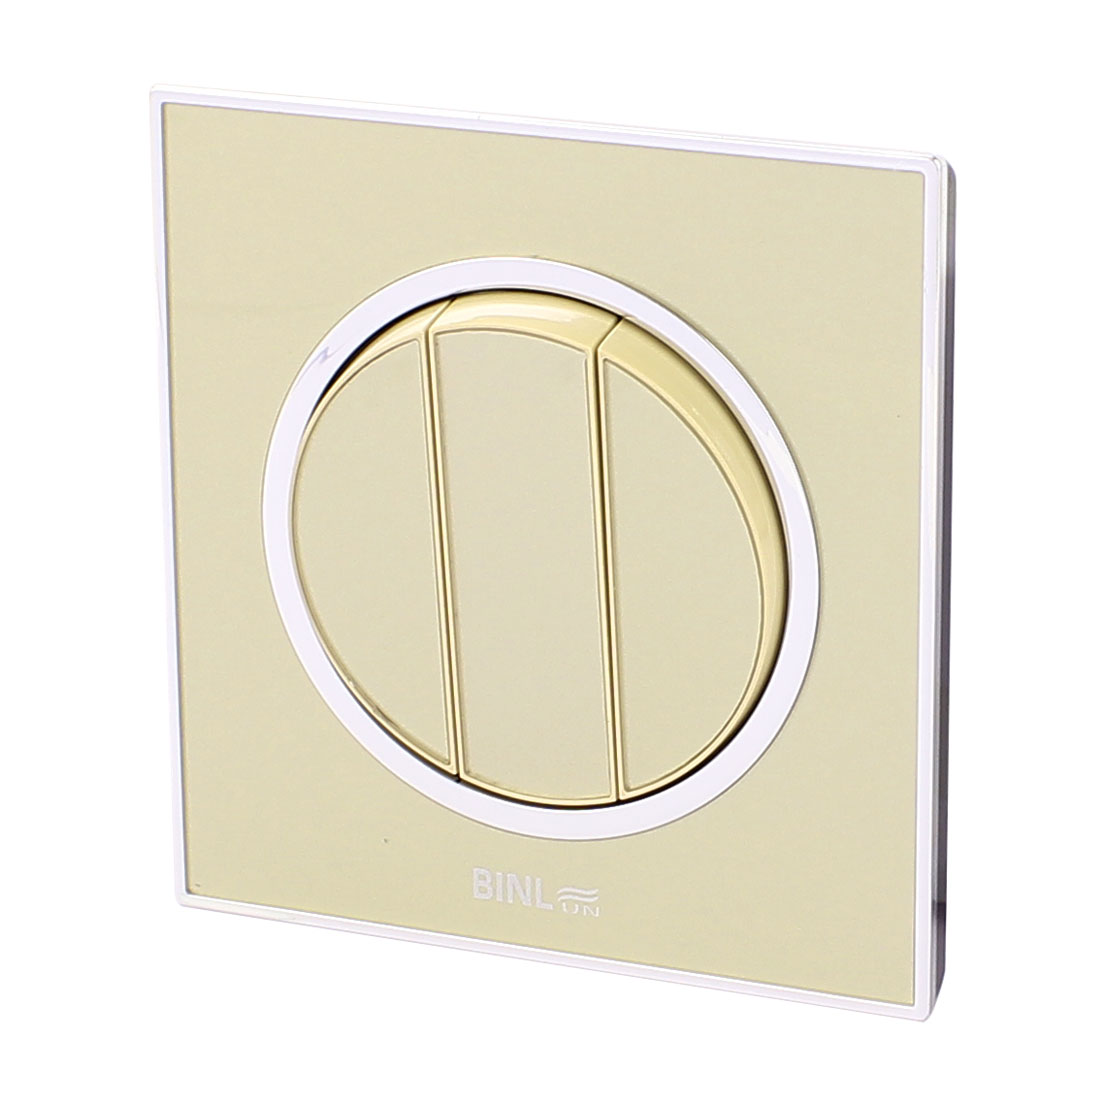 86 Type 3 Gang 1 Way On/Off Press Button Wall Mounted Panel Switch Golden AC 220V 10A